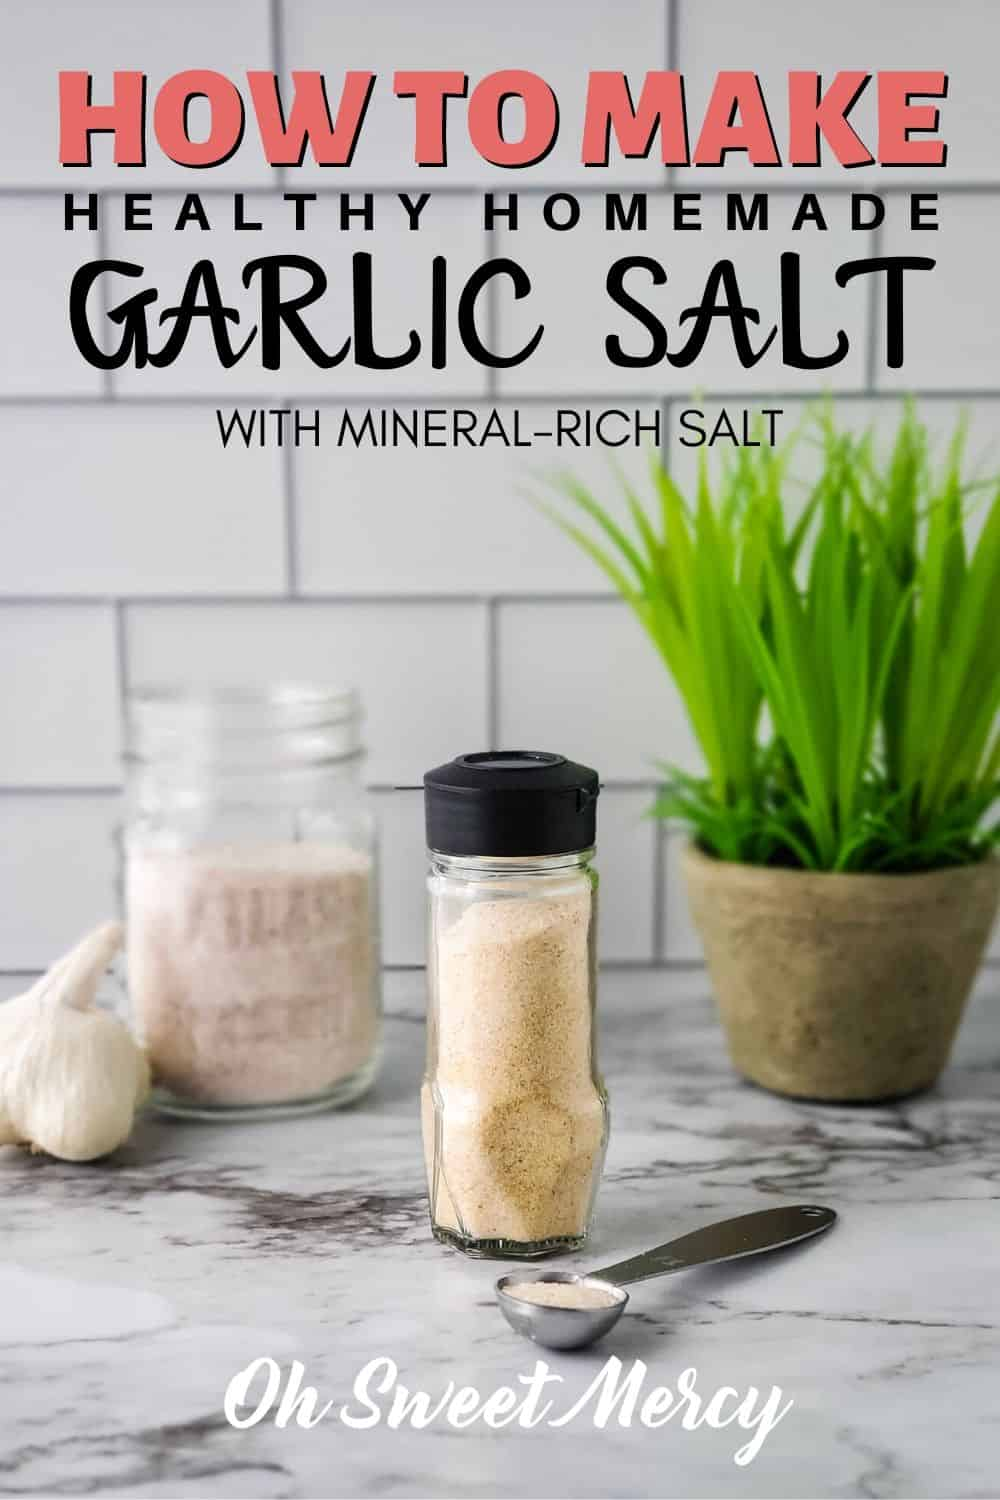 Out of garlic salt? Make your own! And, make it healthier using mineral-rich salt. Perfect for garlic bread and all the places you use garlic salt. #easy #diy #garlic #realfood #homemadeseasonings